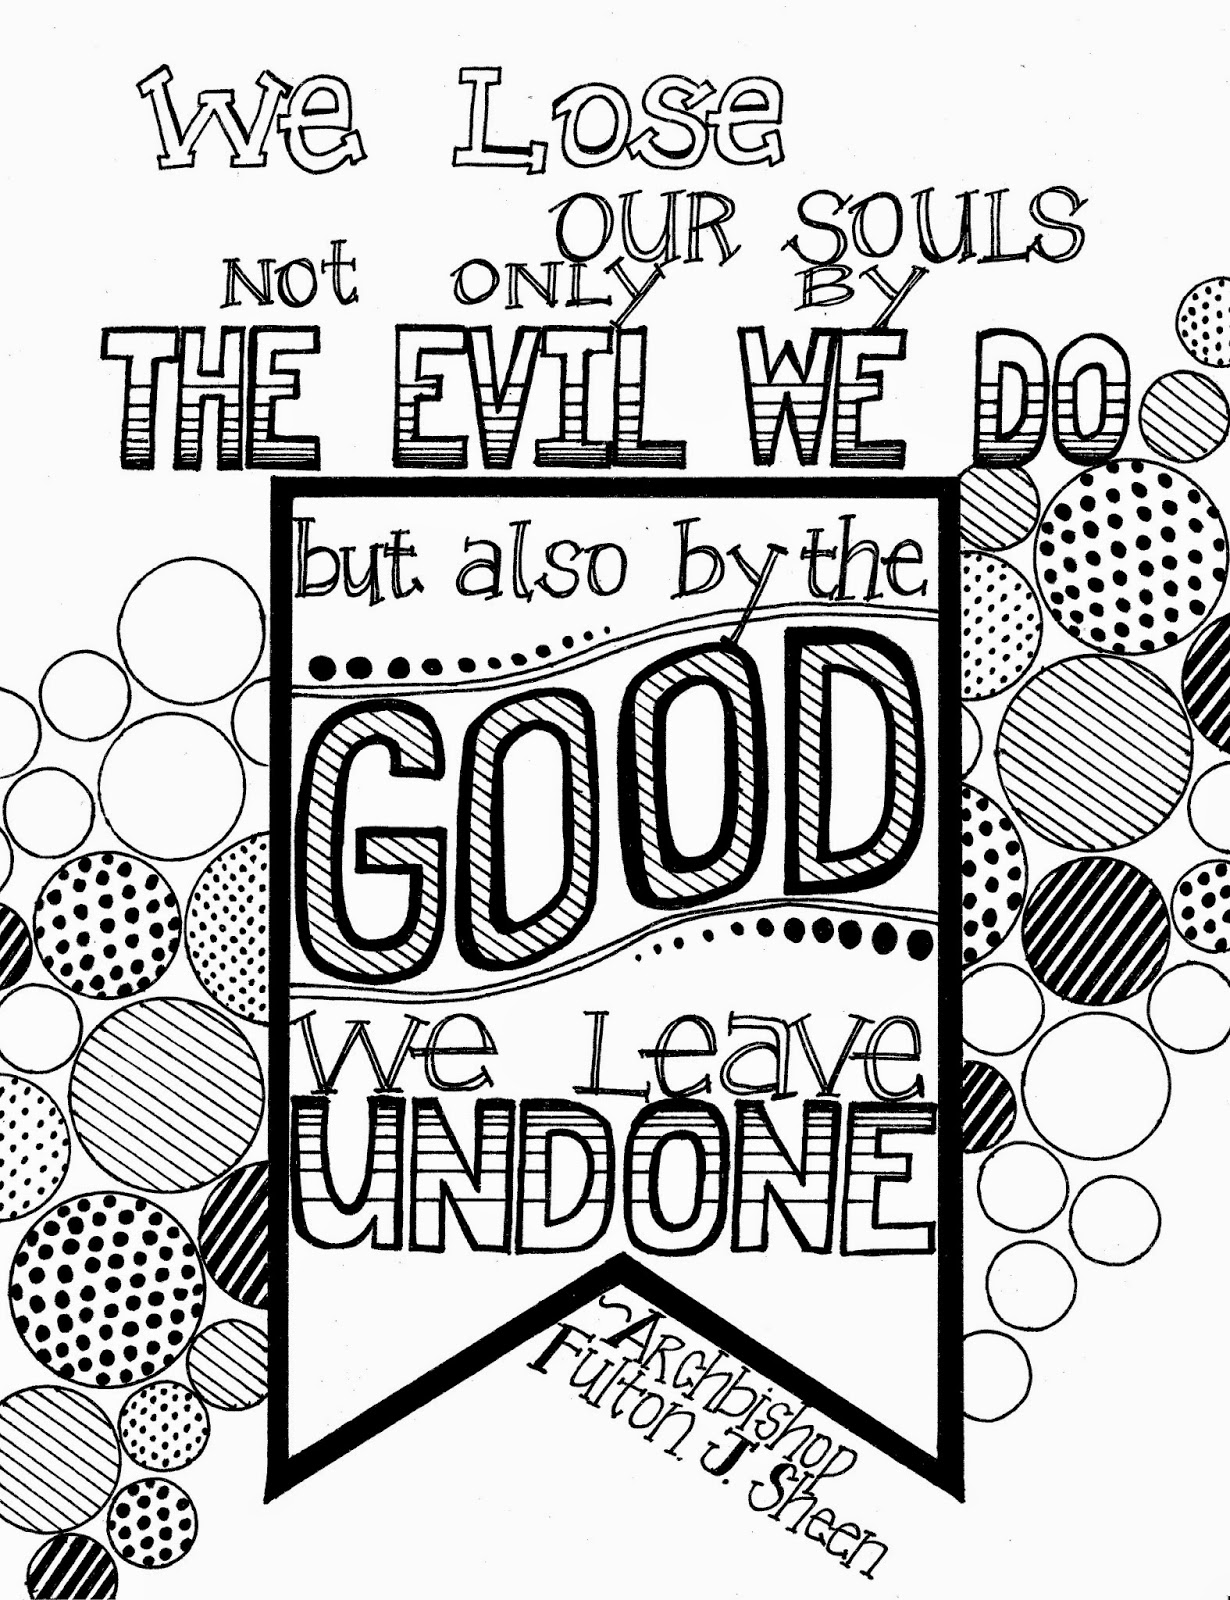 http://looktohimandberadiant.blogspot.com/2013/07/sheen-quote-coloring-page.html